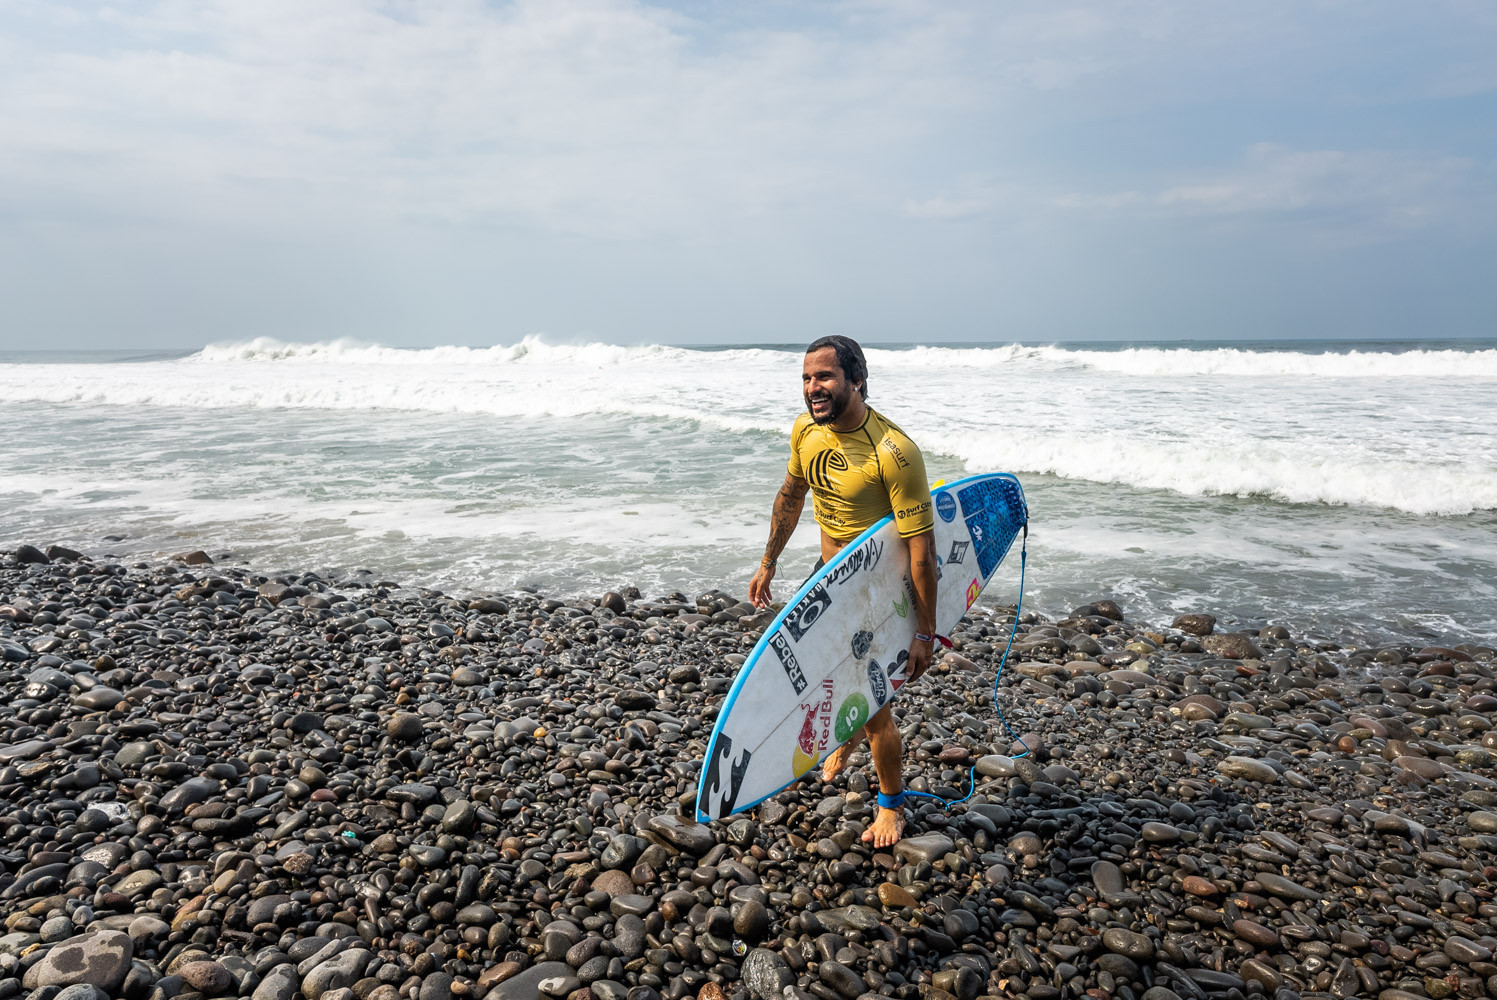 Brazil's Italo Ferreira - the defending champion - had to settle for second spot behind Murakami ©ISA/Sean Evans